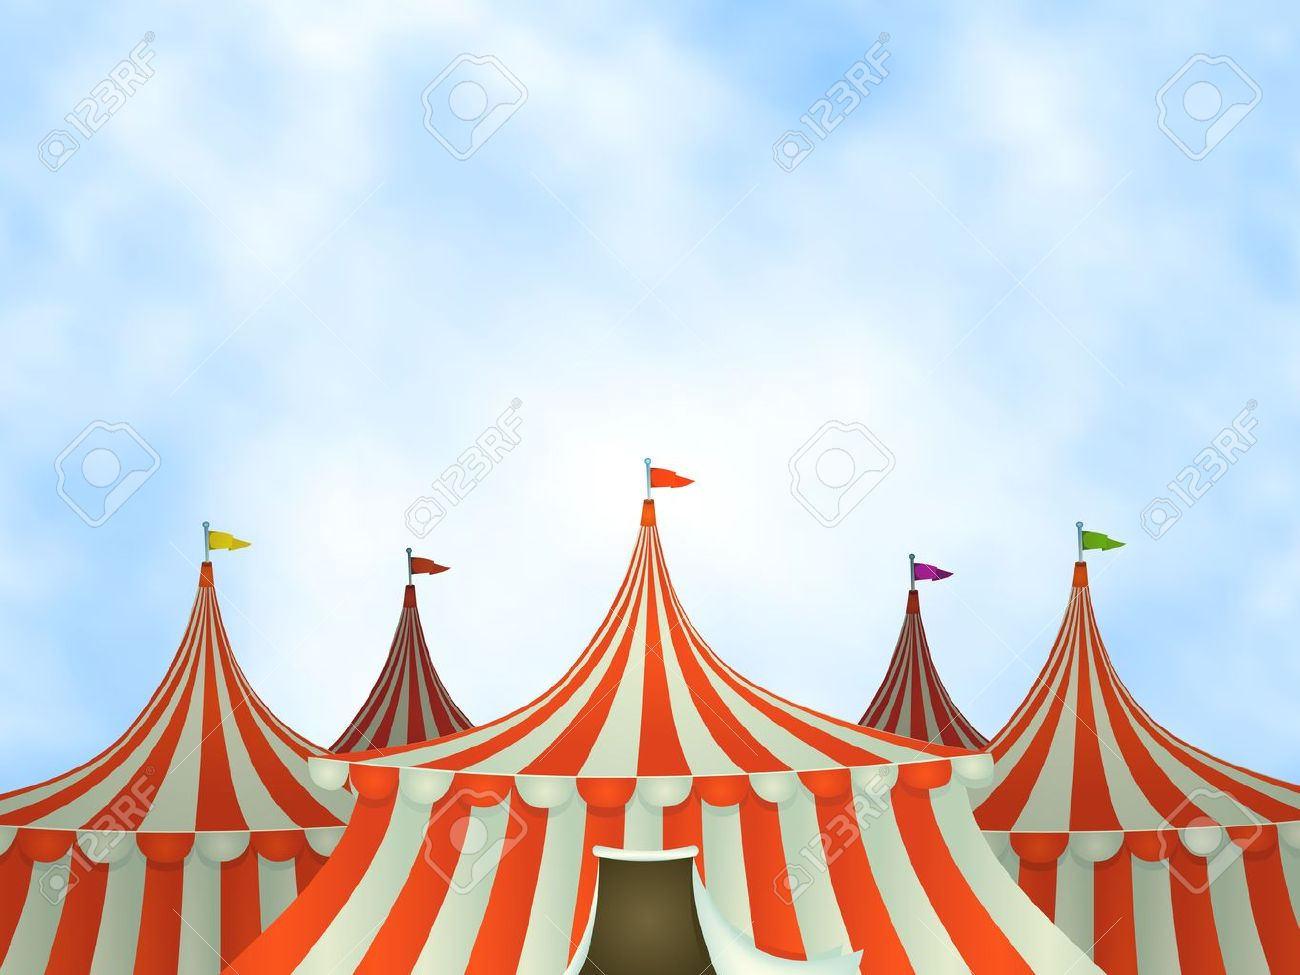 Illustration of cartoon circus tents on a blue sky background Stock Vector - 14116390  sc 1 st  123RF.com & Illustration Of Cartoon Circus Tents On A Blue Sky Background ...